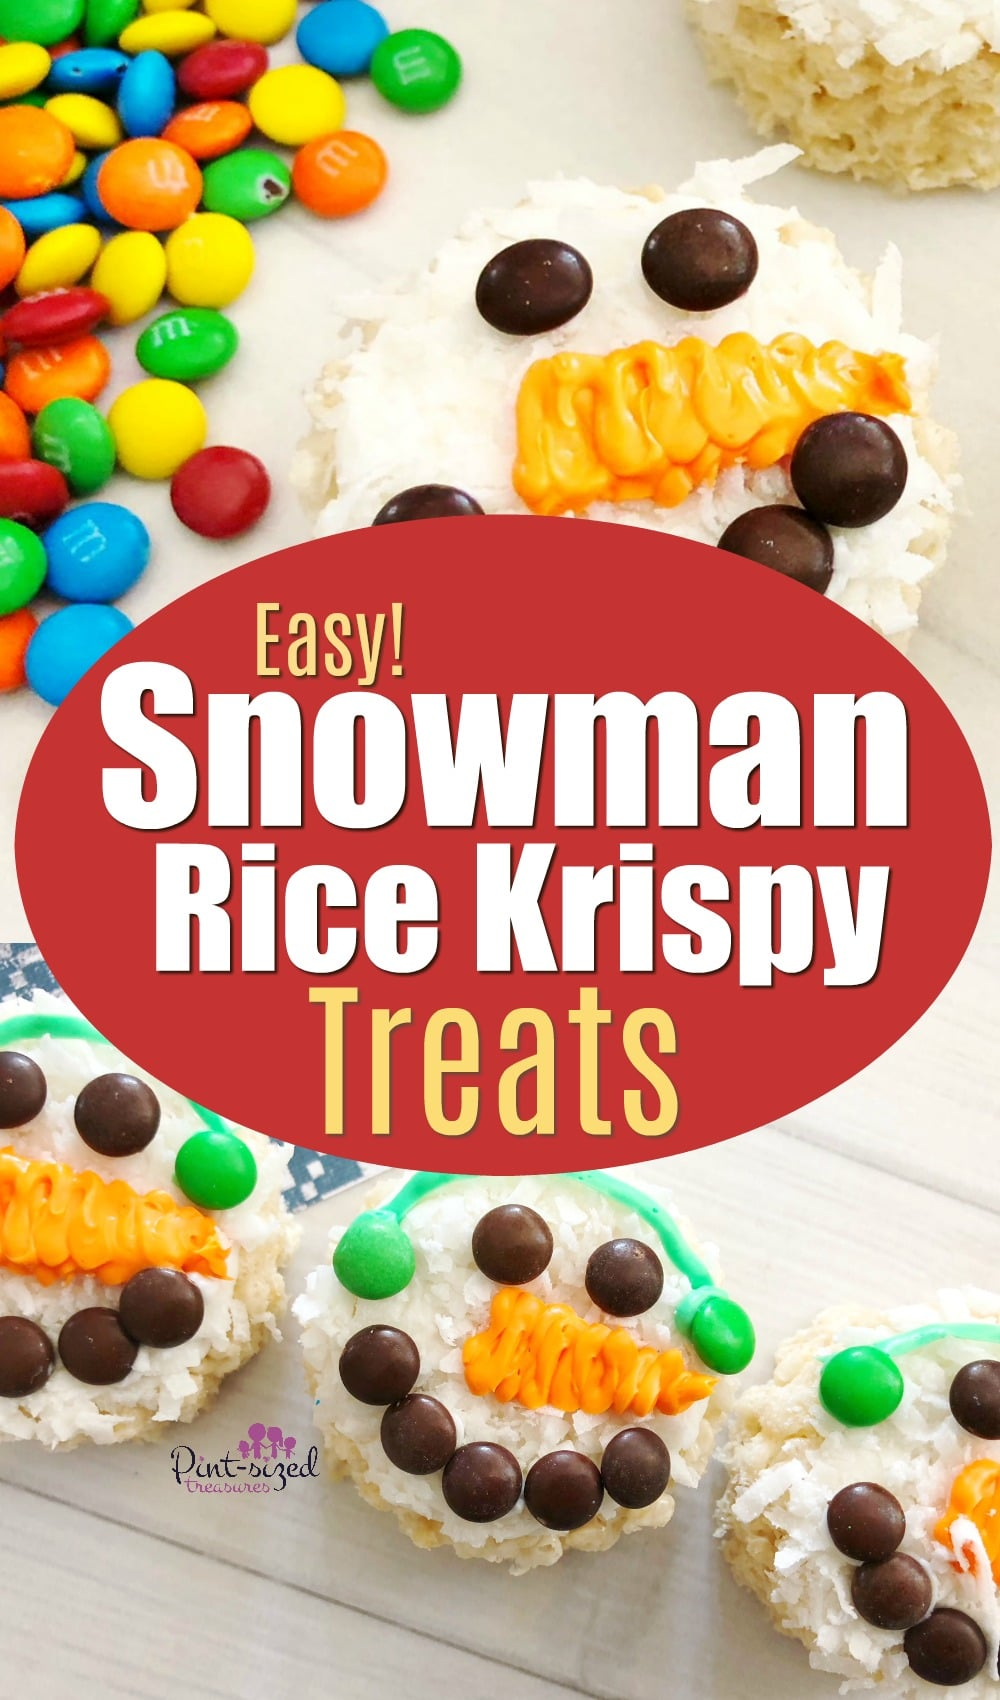 Snowman Rice Krispie Treats Recipe